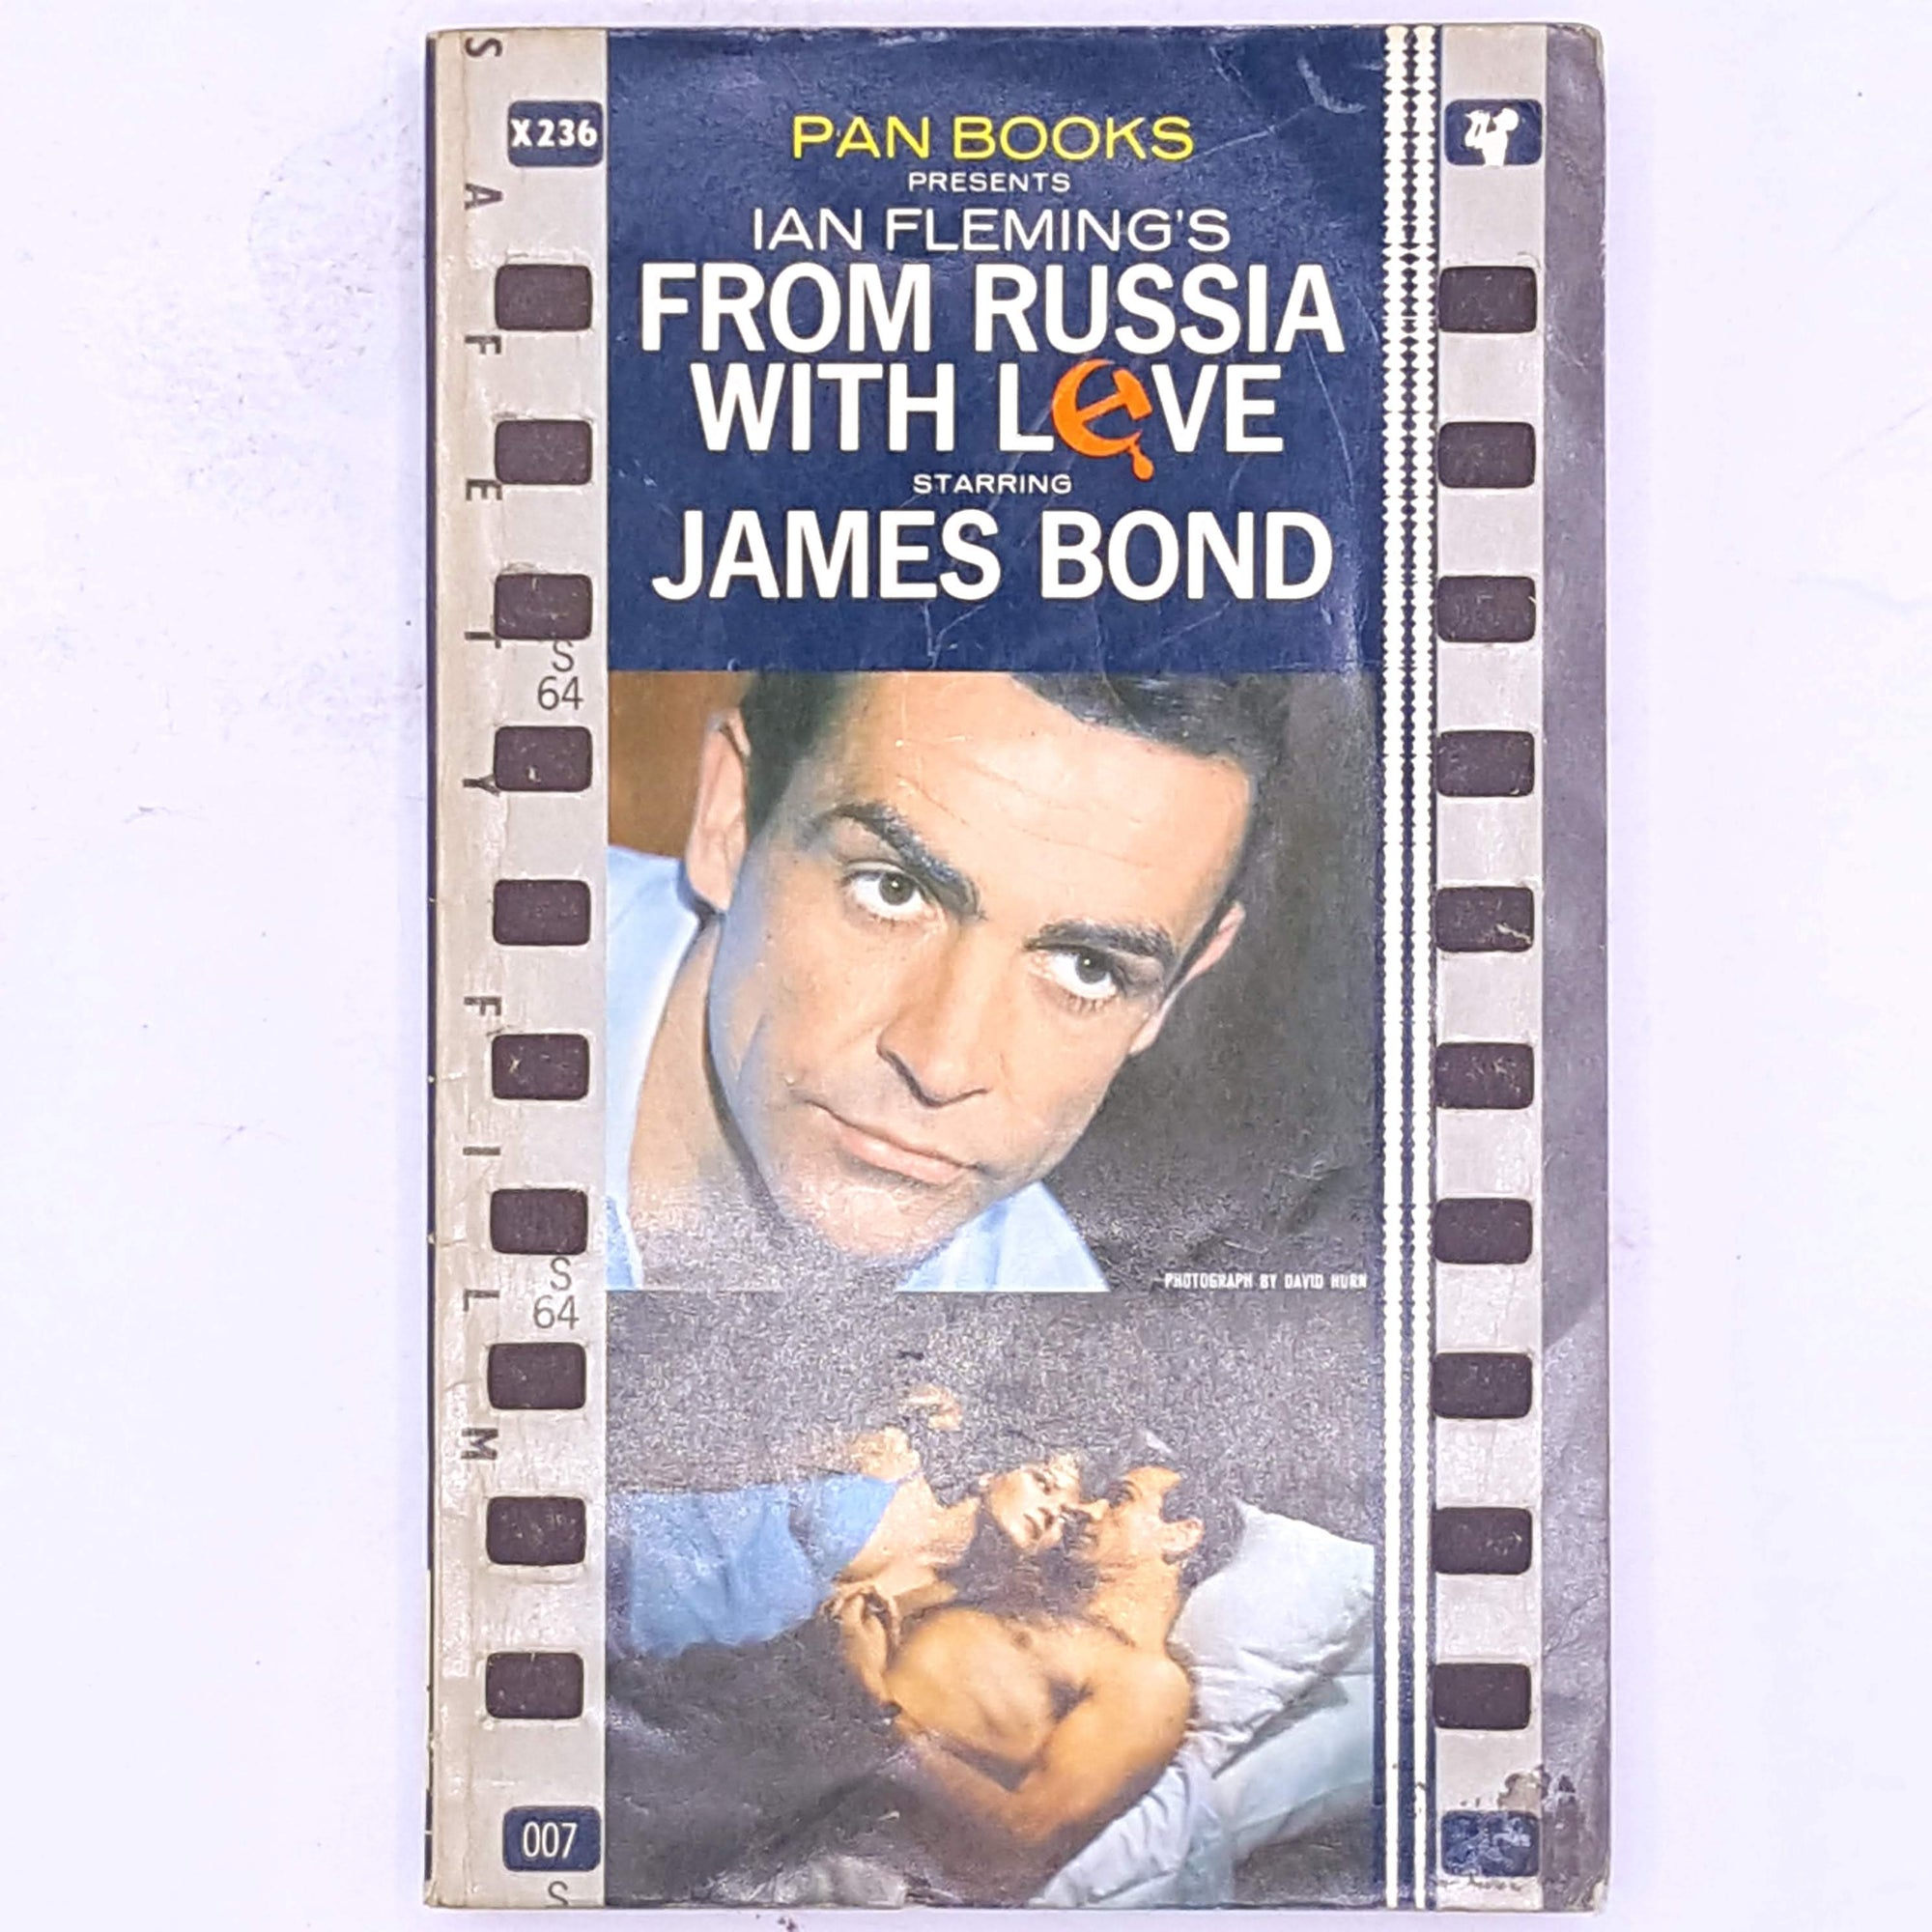 007 - From Russia With Love